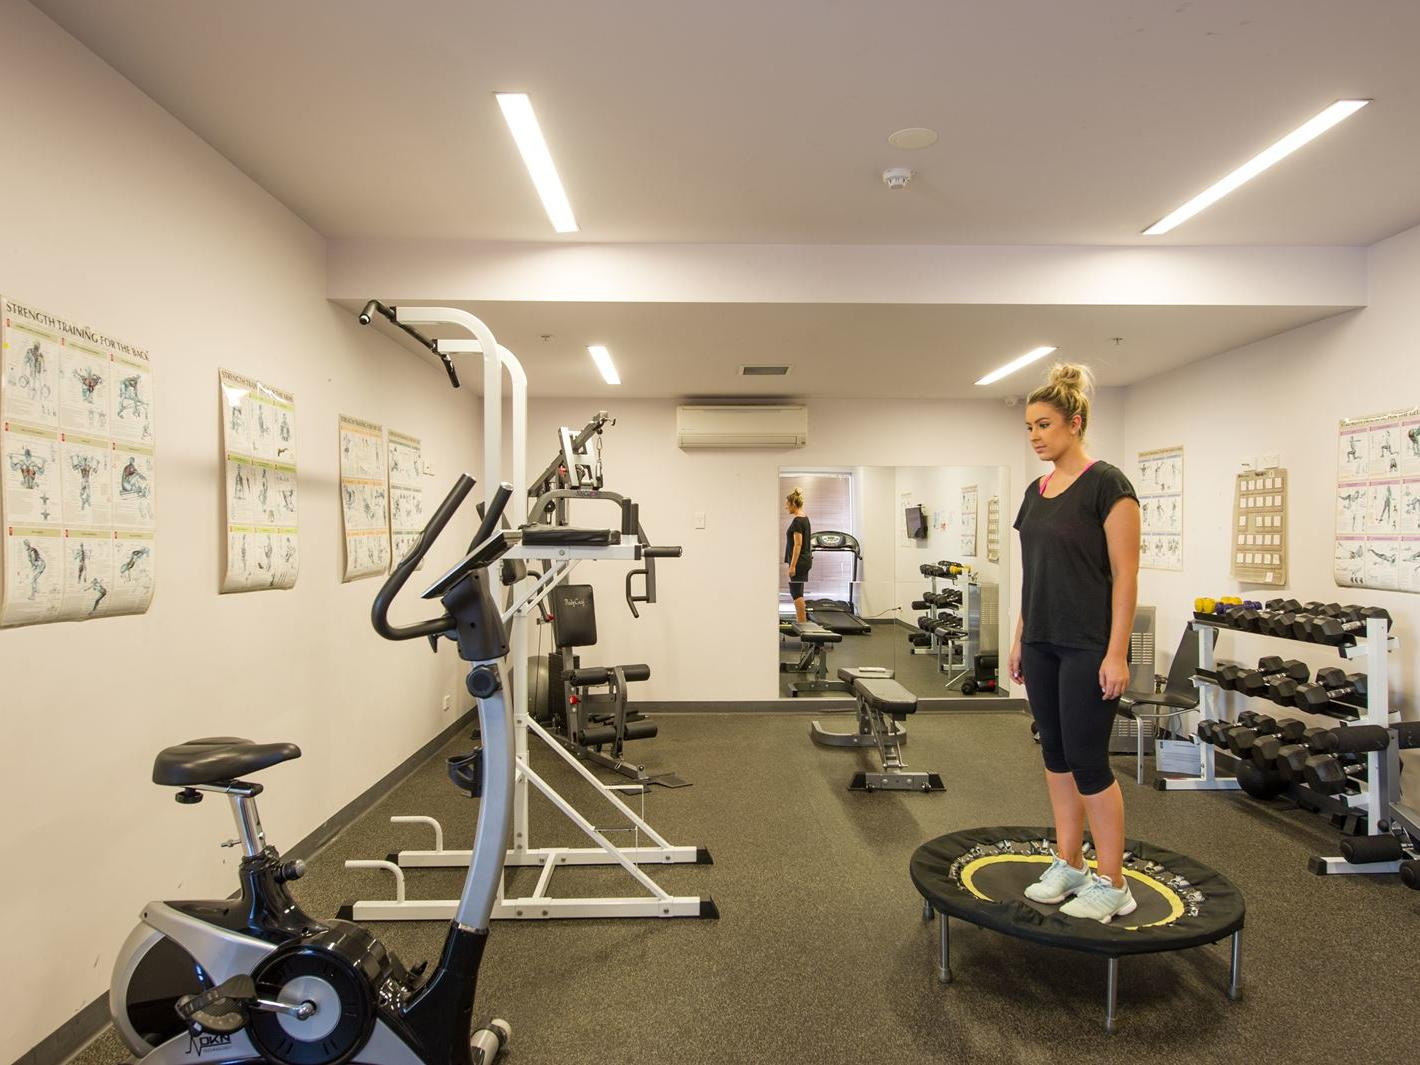 Spacious gym located on the ground floor available for all residents to use - additional fee applies